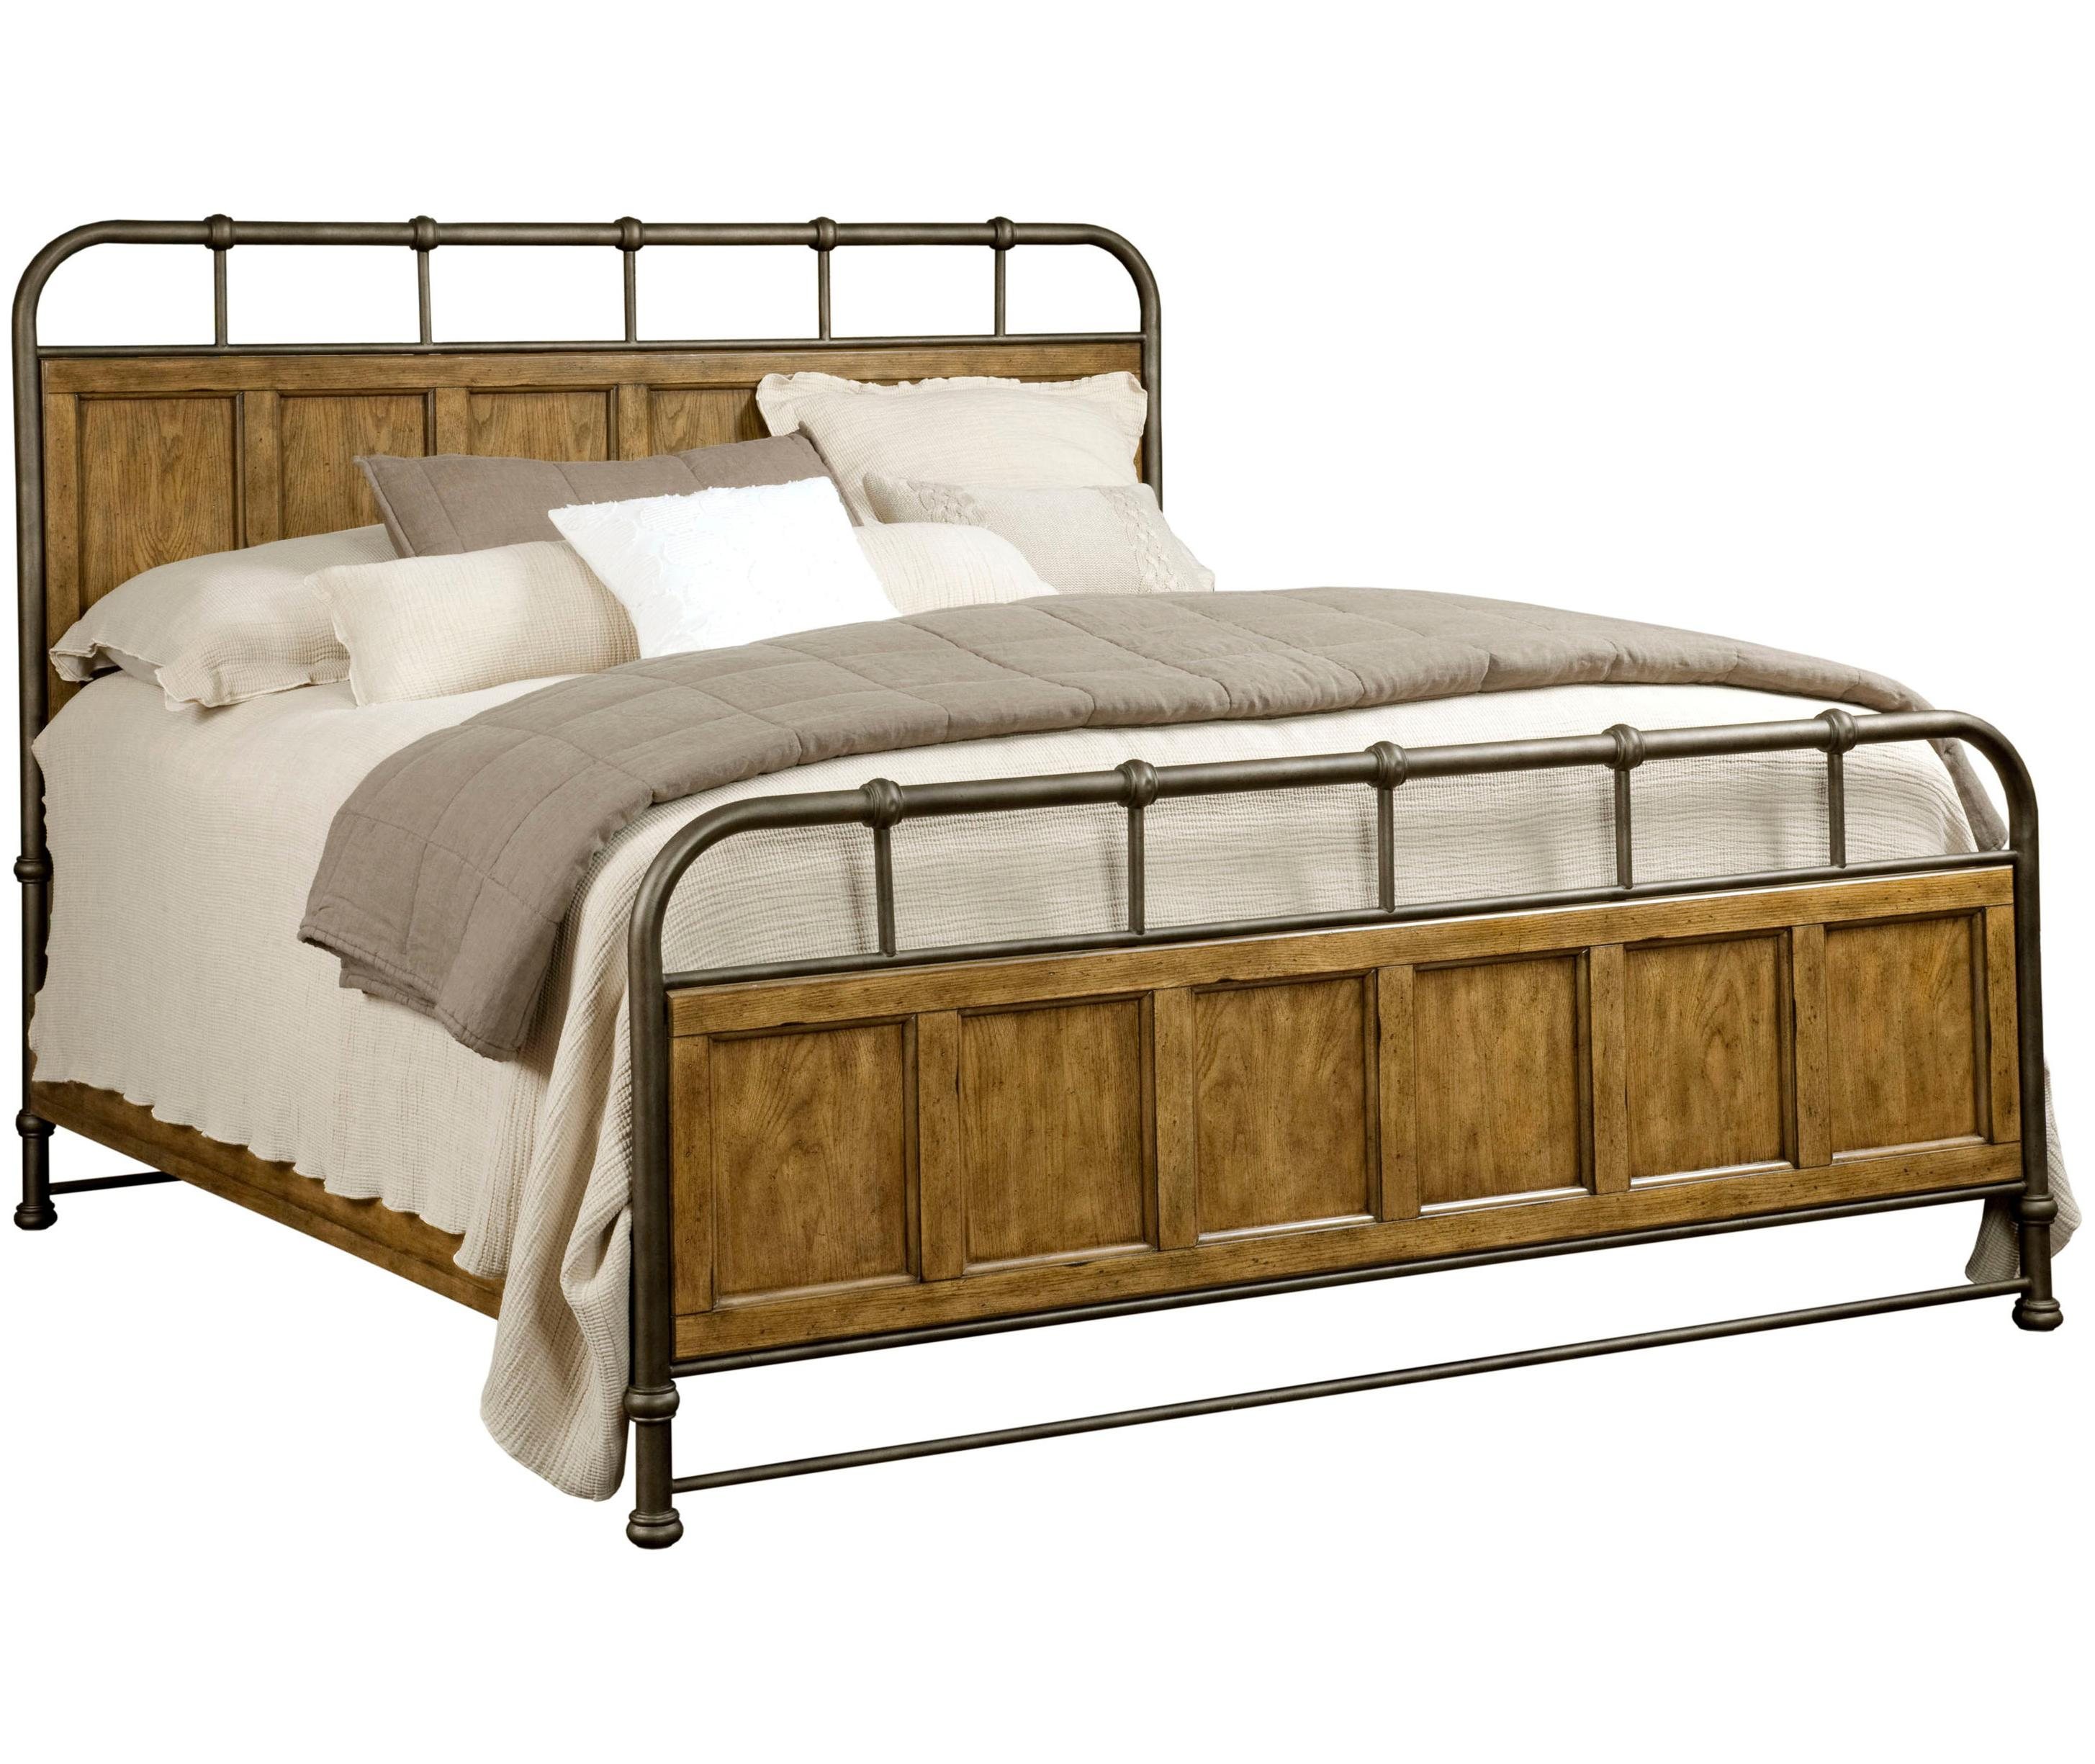 Broyhill Furniture New Vintage Queen Metal And Wood Bedstead Conlin 39 S Furniture Panel Beds